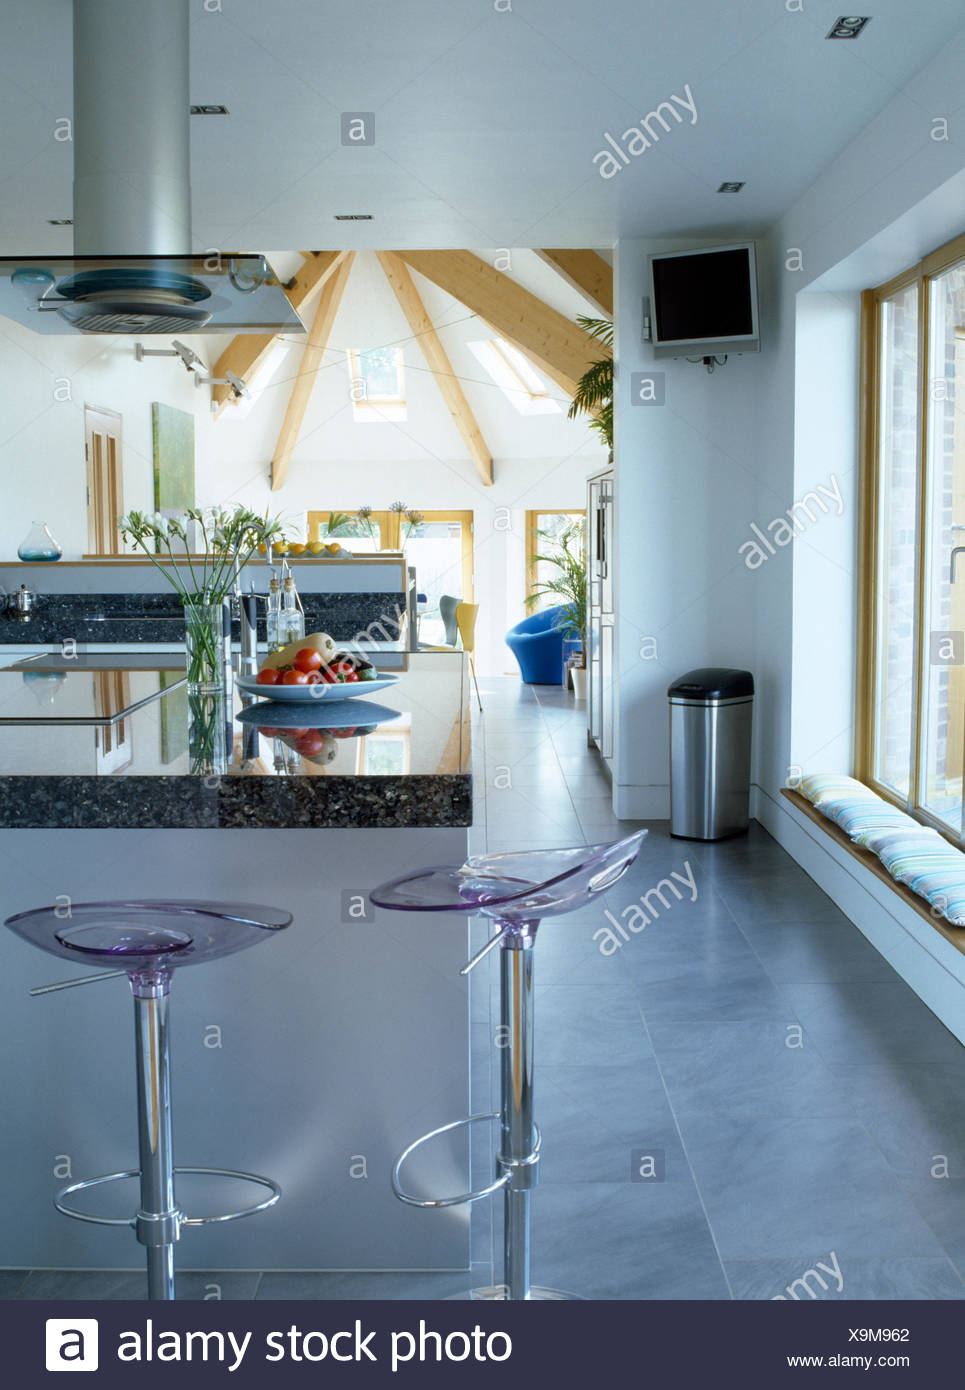 Modern Bar Stools Stock Photos & Modern Bar Stools Stock Images - Alamy